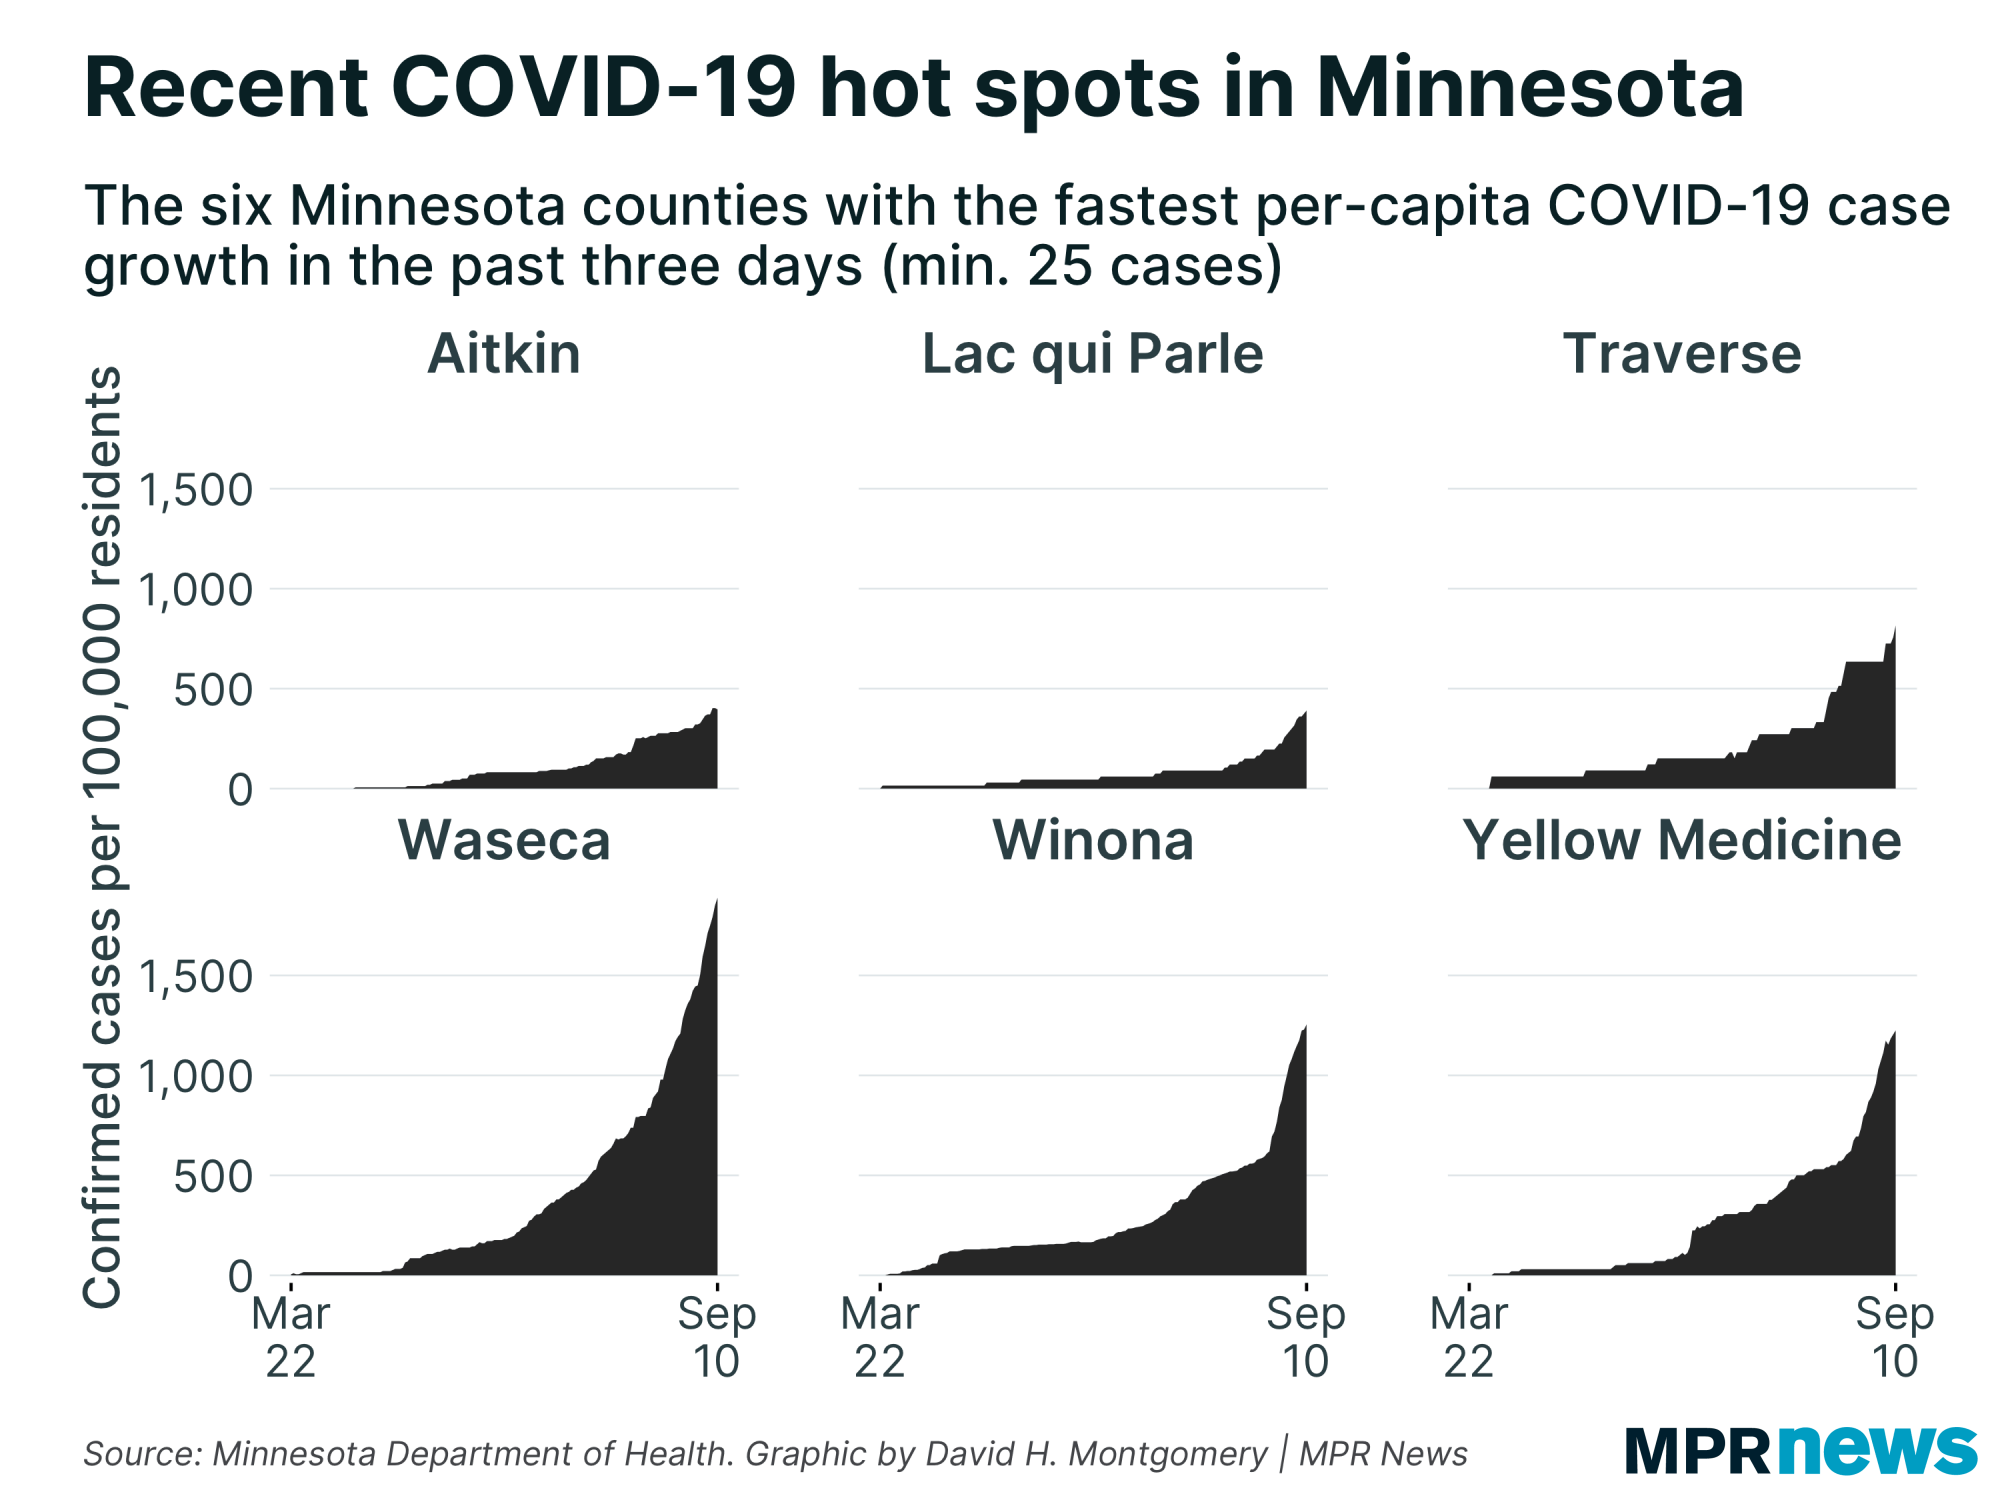 COVID-19 counts MN with fastest per capita growth